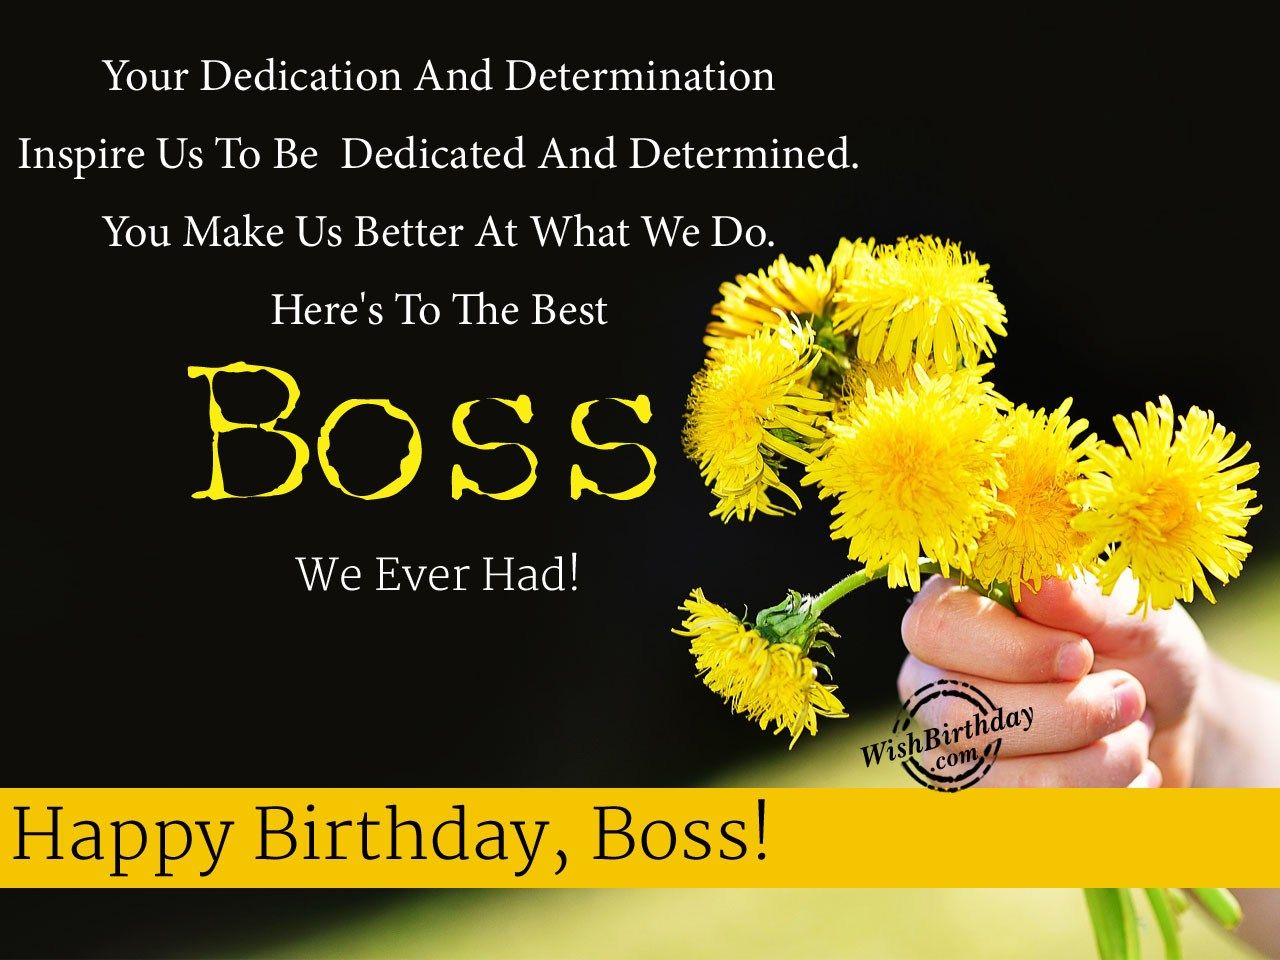 Your Dedication And Determination Boss Birthday Wishes